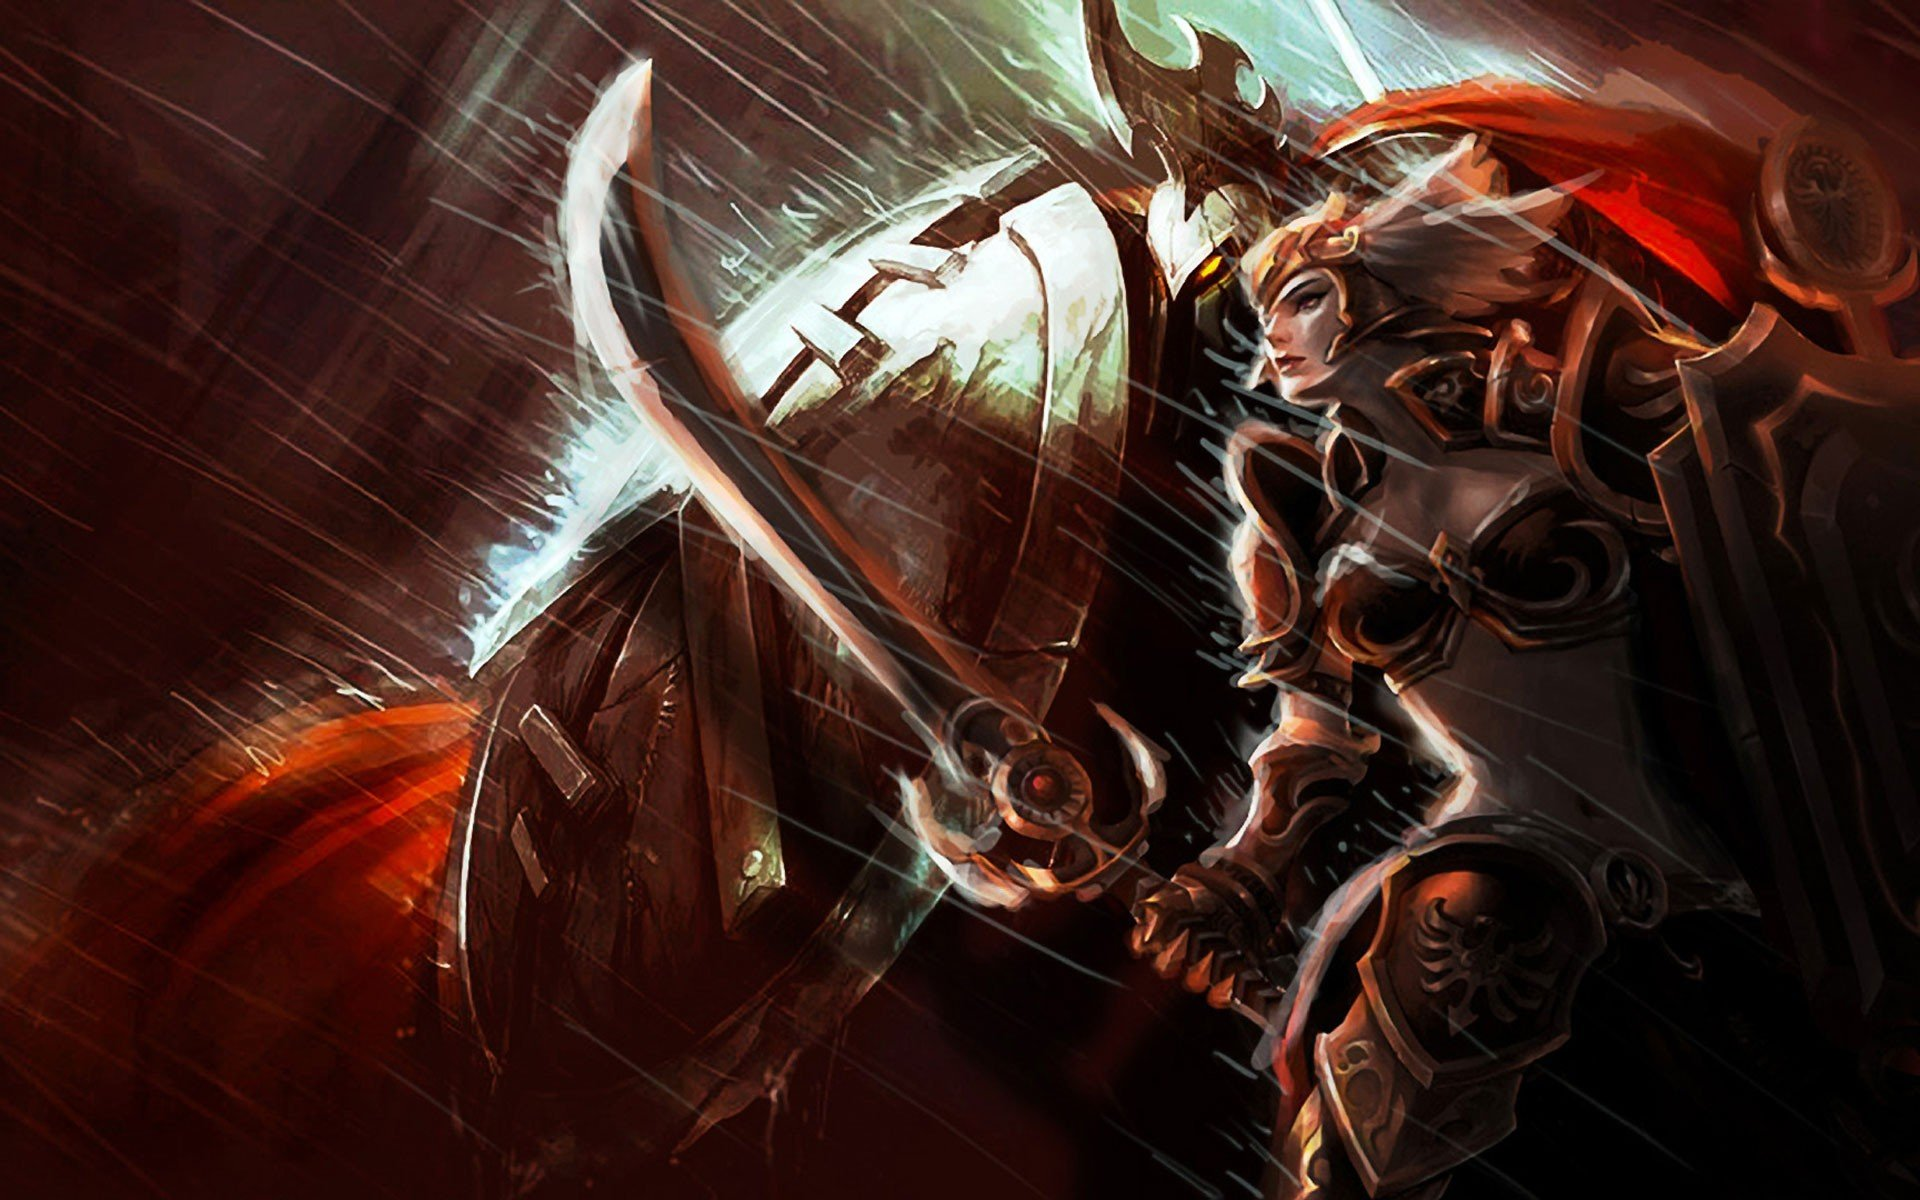 video games League of Legends valkyrie blade armor Pantheon Leona S_H_I_E_L_D_ Leona the Radiant Dawn